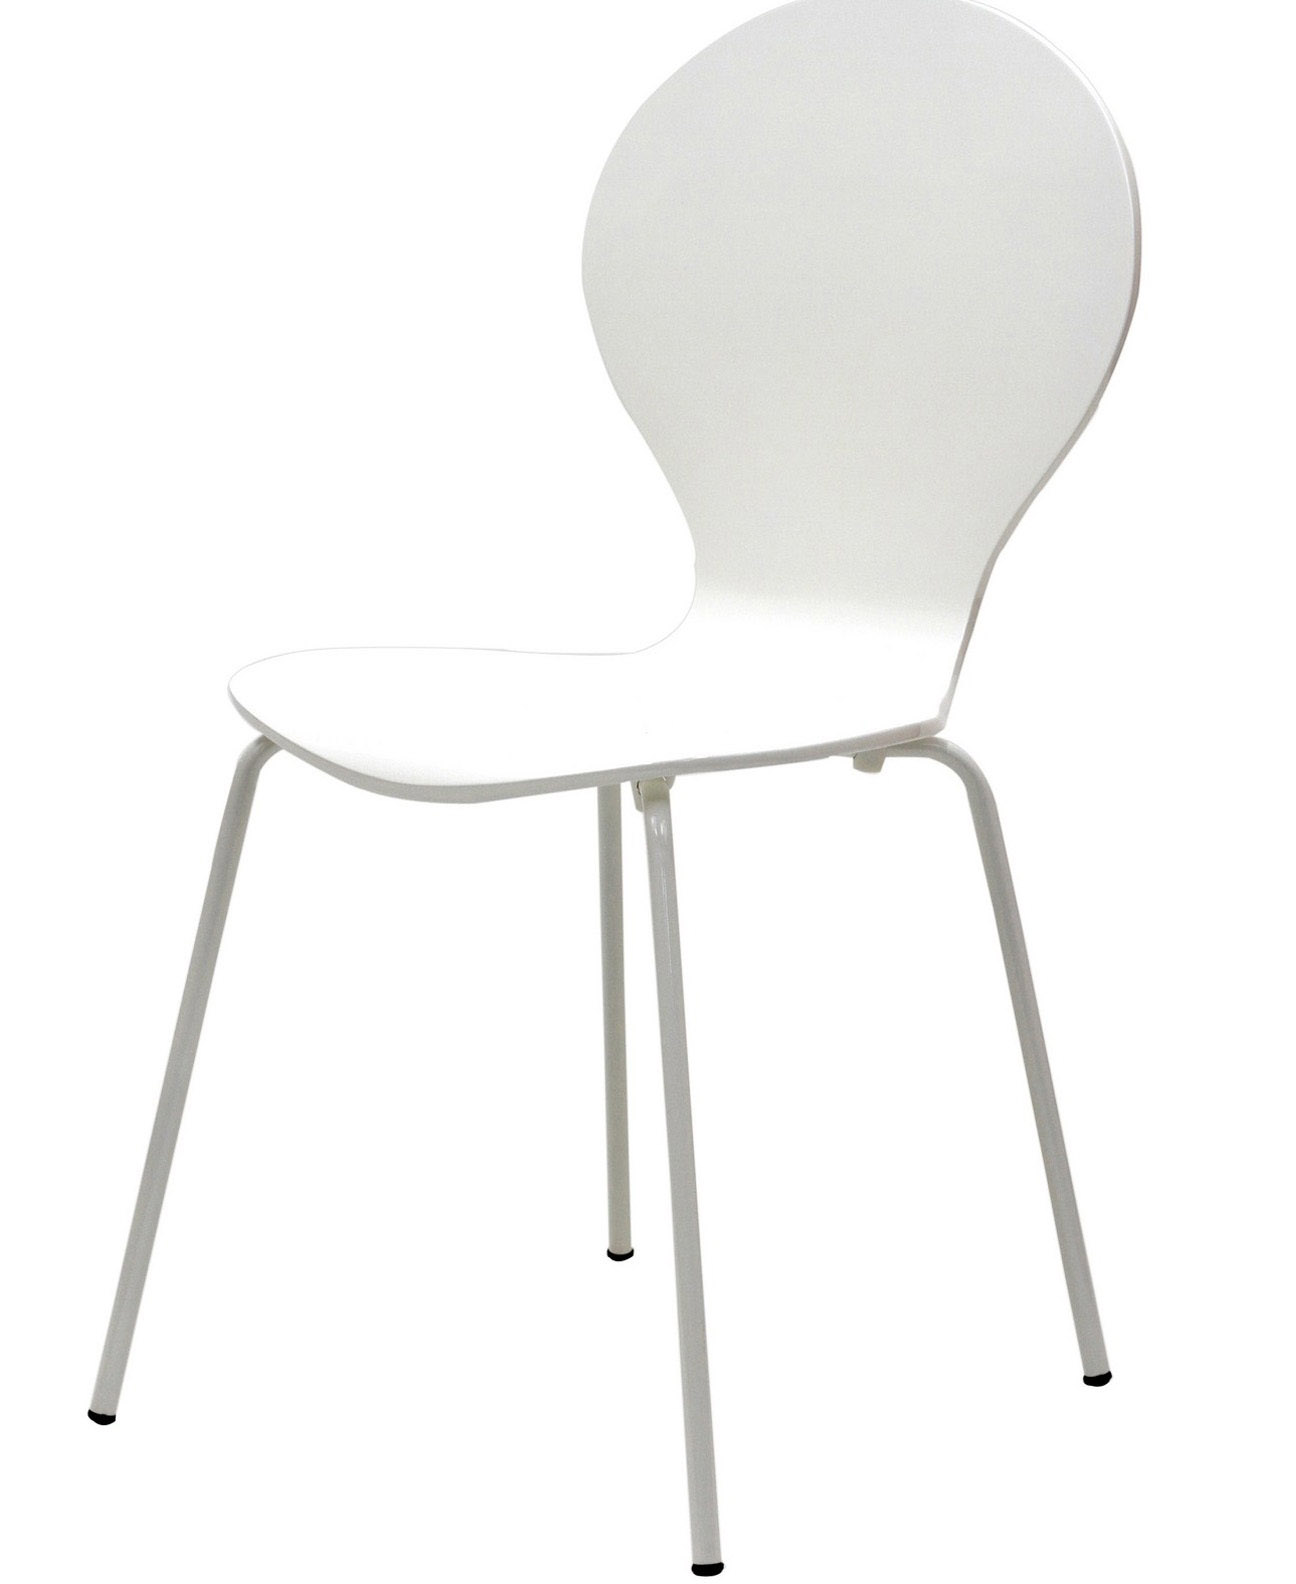 White Stackable Chairs Chairs Dining Chairs Modern Chairs Cityliving Design